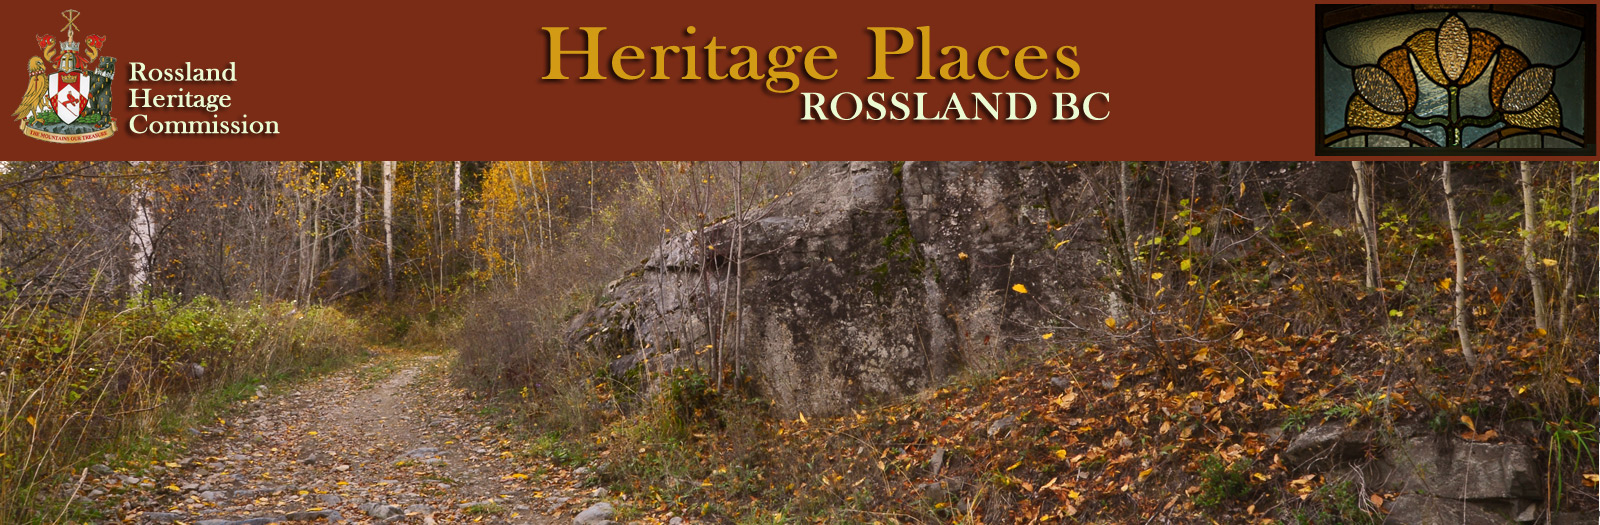 Heritage Rossland Commission - Heritage Places -Heritage Sites banner